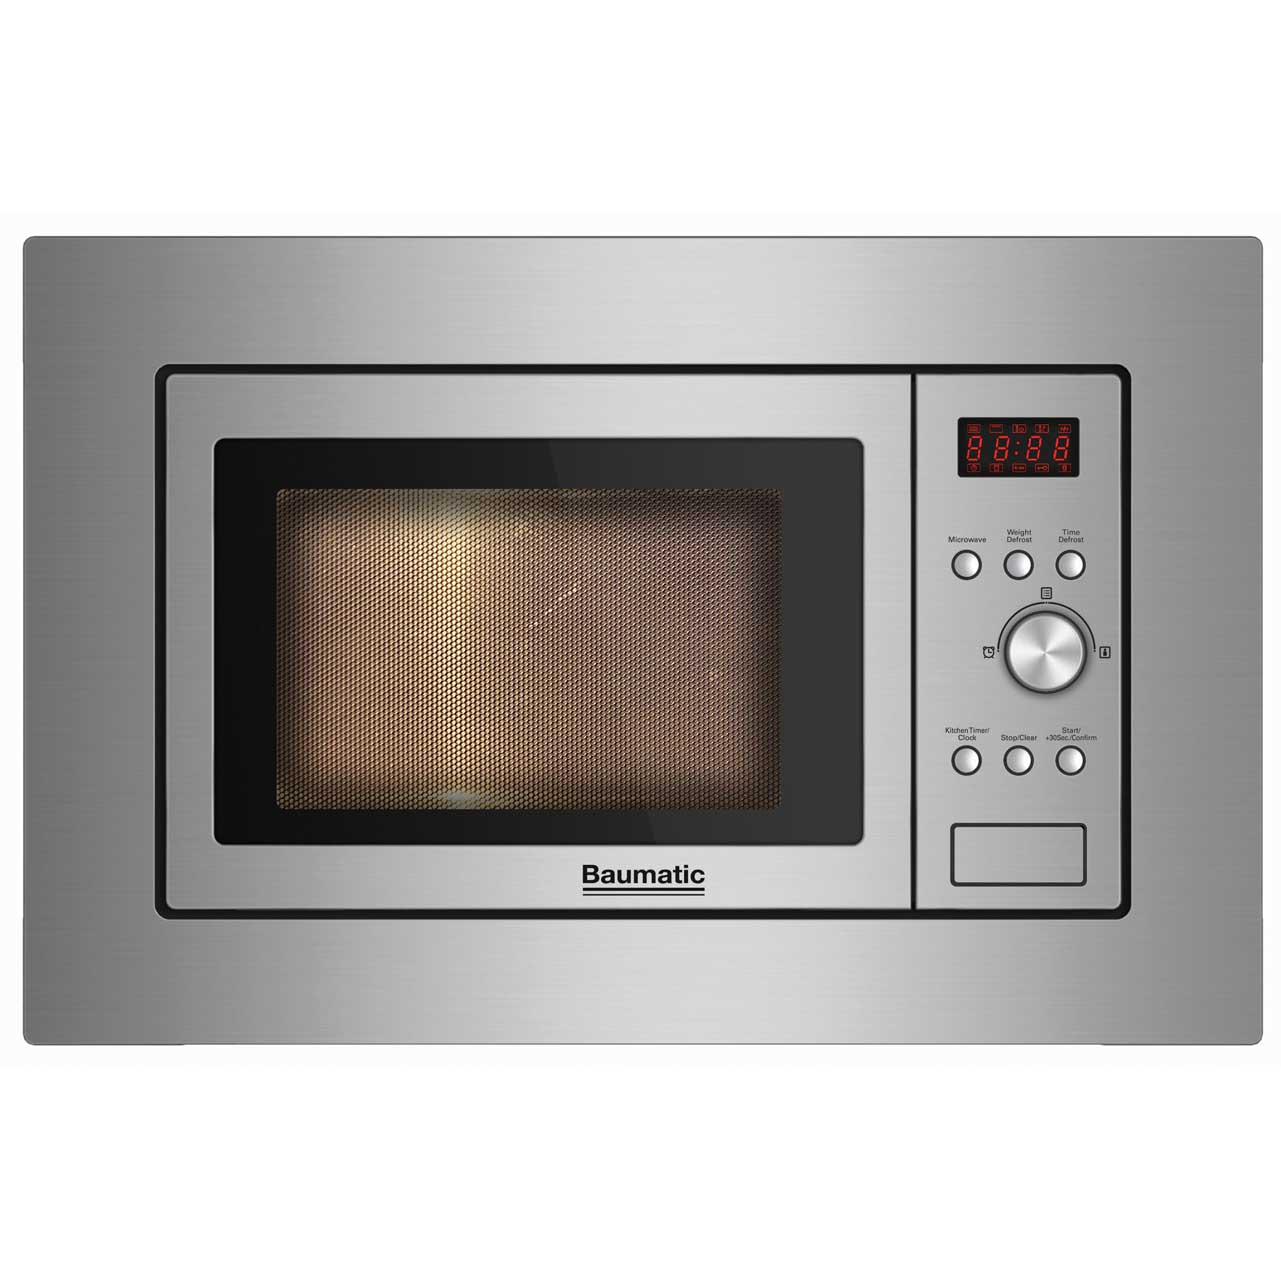 Baumatic BMIS3820 Integrated Microwave Oven in Stainless Steel